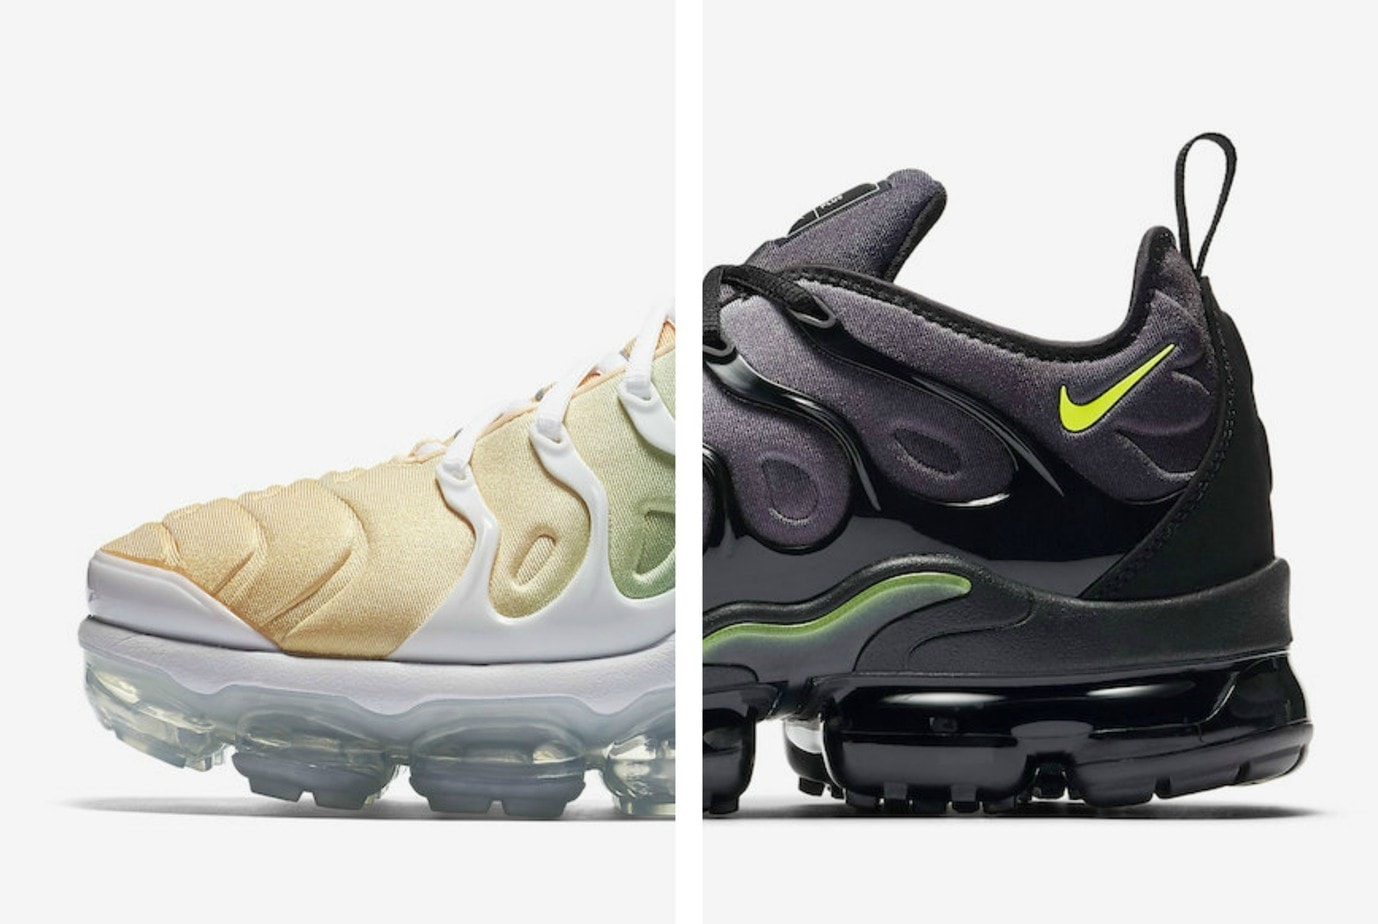 f3cb4d2d590 The new Nike Air Vapormax Plus first release in January of this year. The  fresh silhouette was a surprise hit